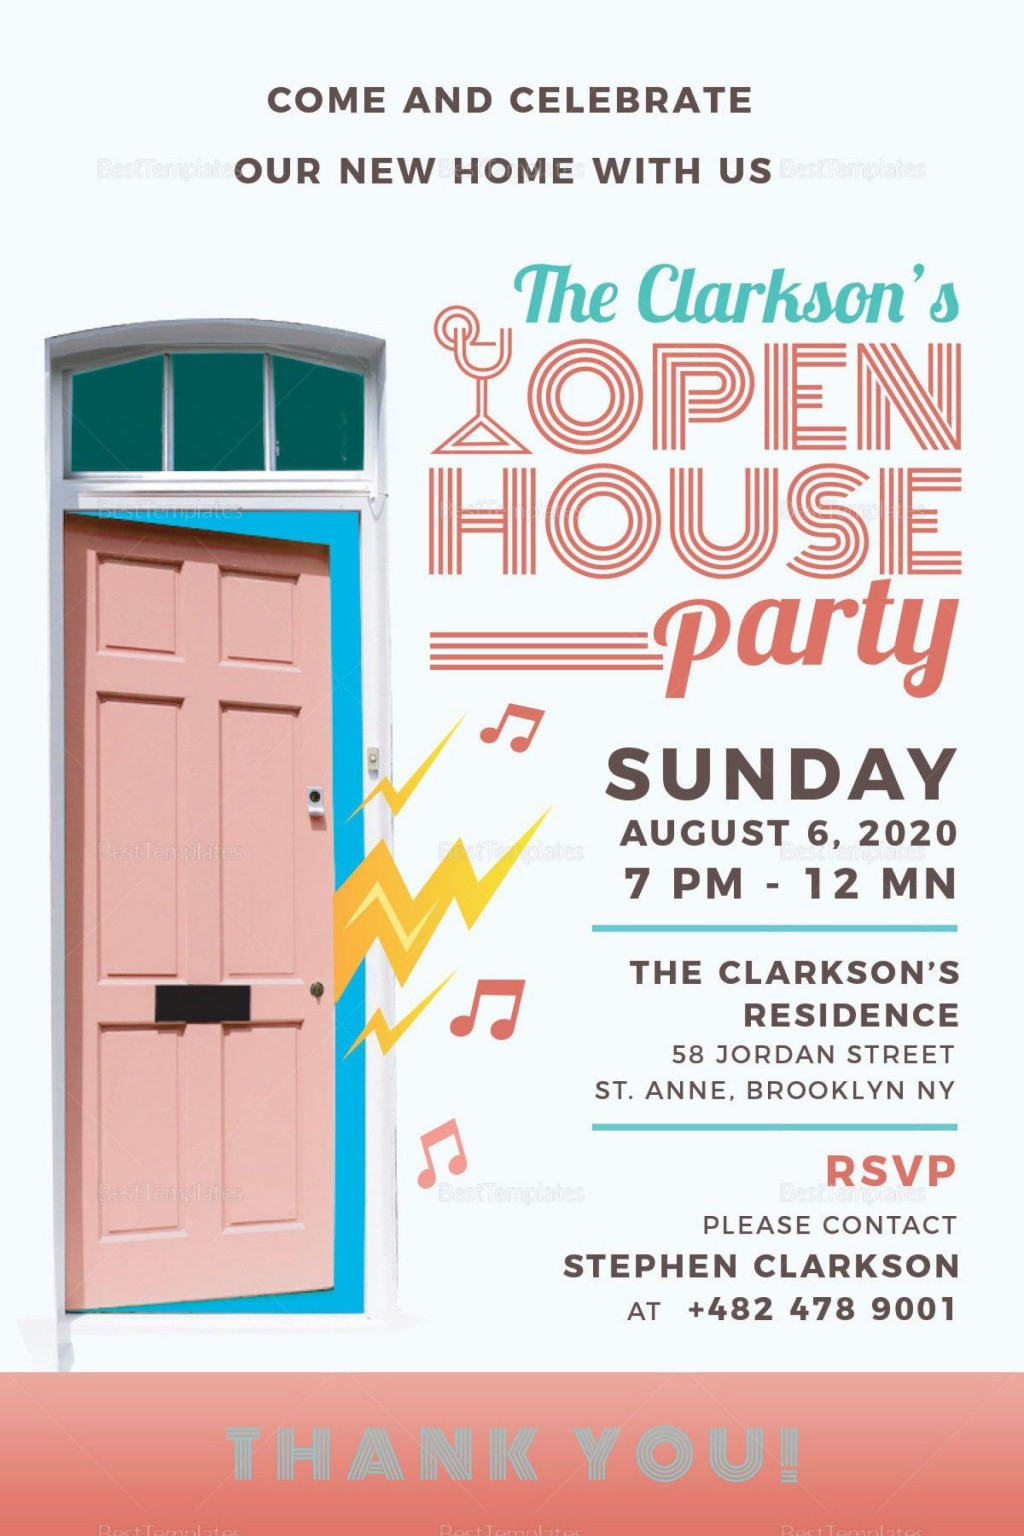 004 Wonderful Open House Invite Template Design  Templates Party InvitationLarge